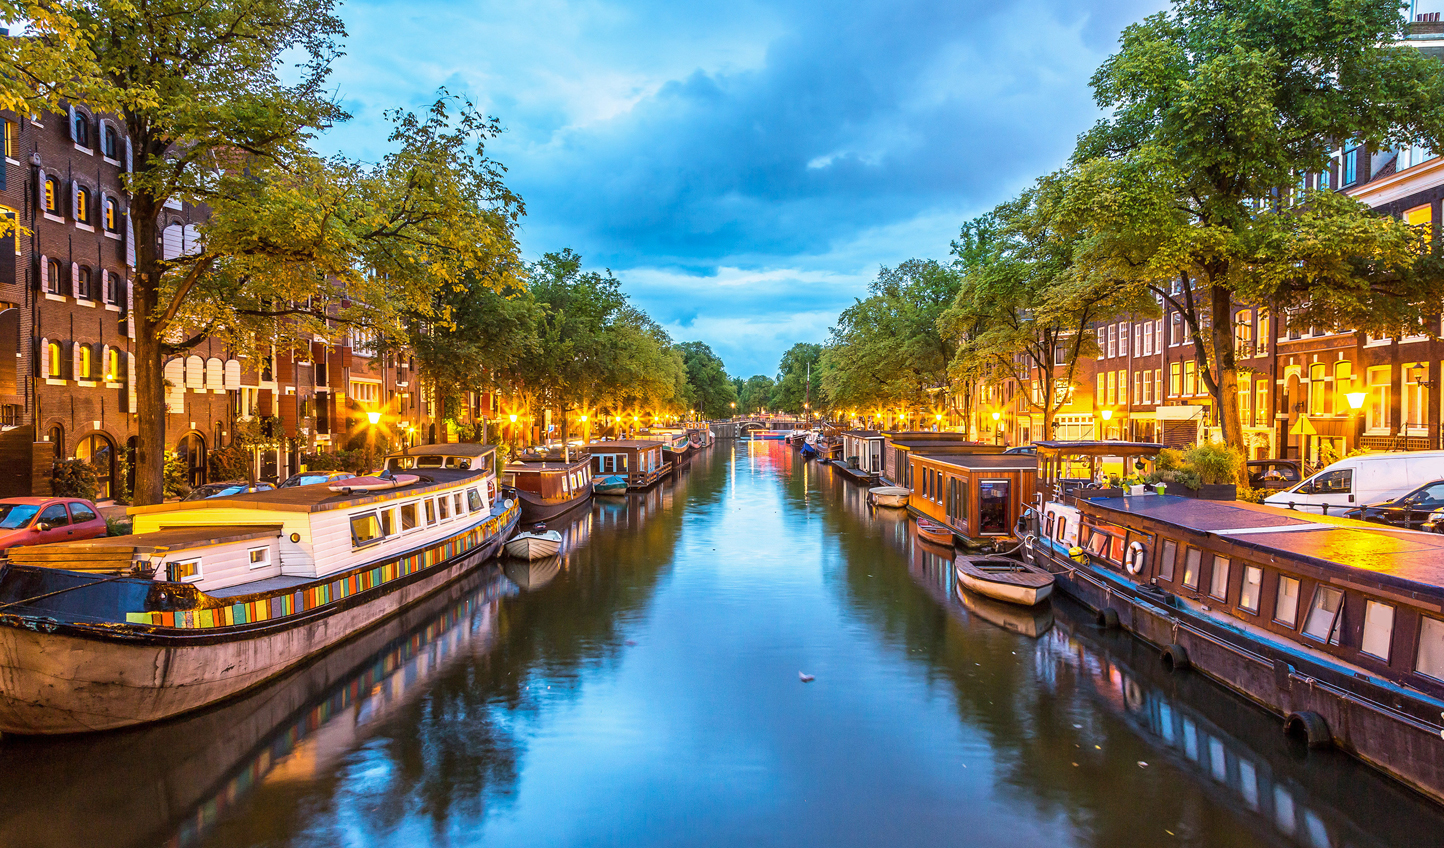 Discover an enchanting city, crisscrossed by canals